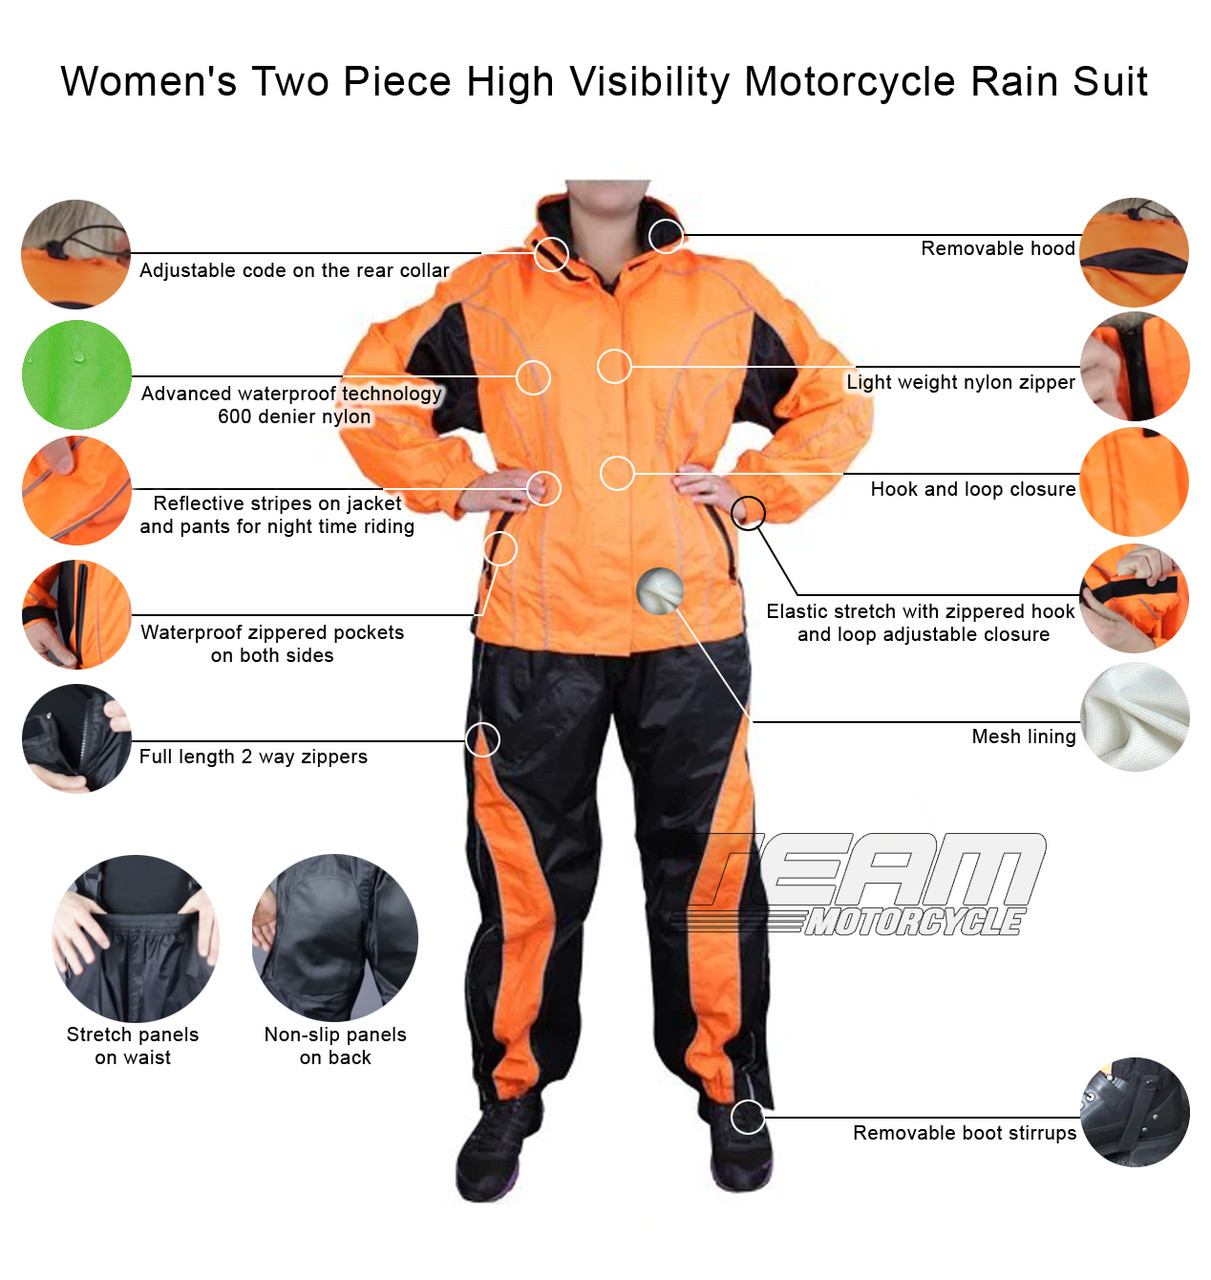 limited price cheap prices sells Women's Two Piece High Visibility Motorcycle Rain Suit